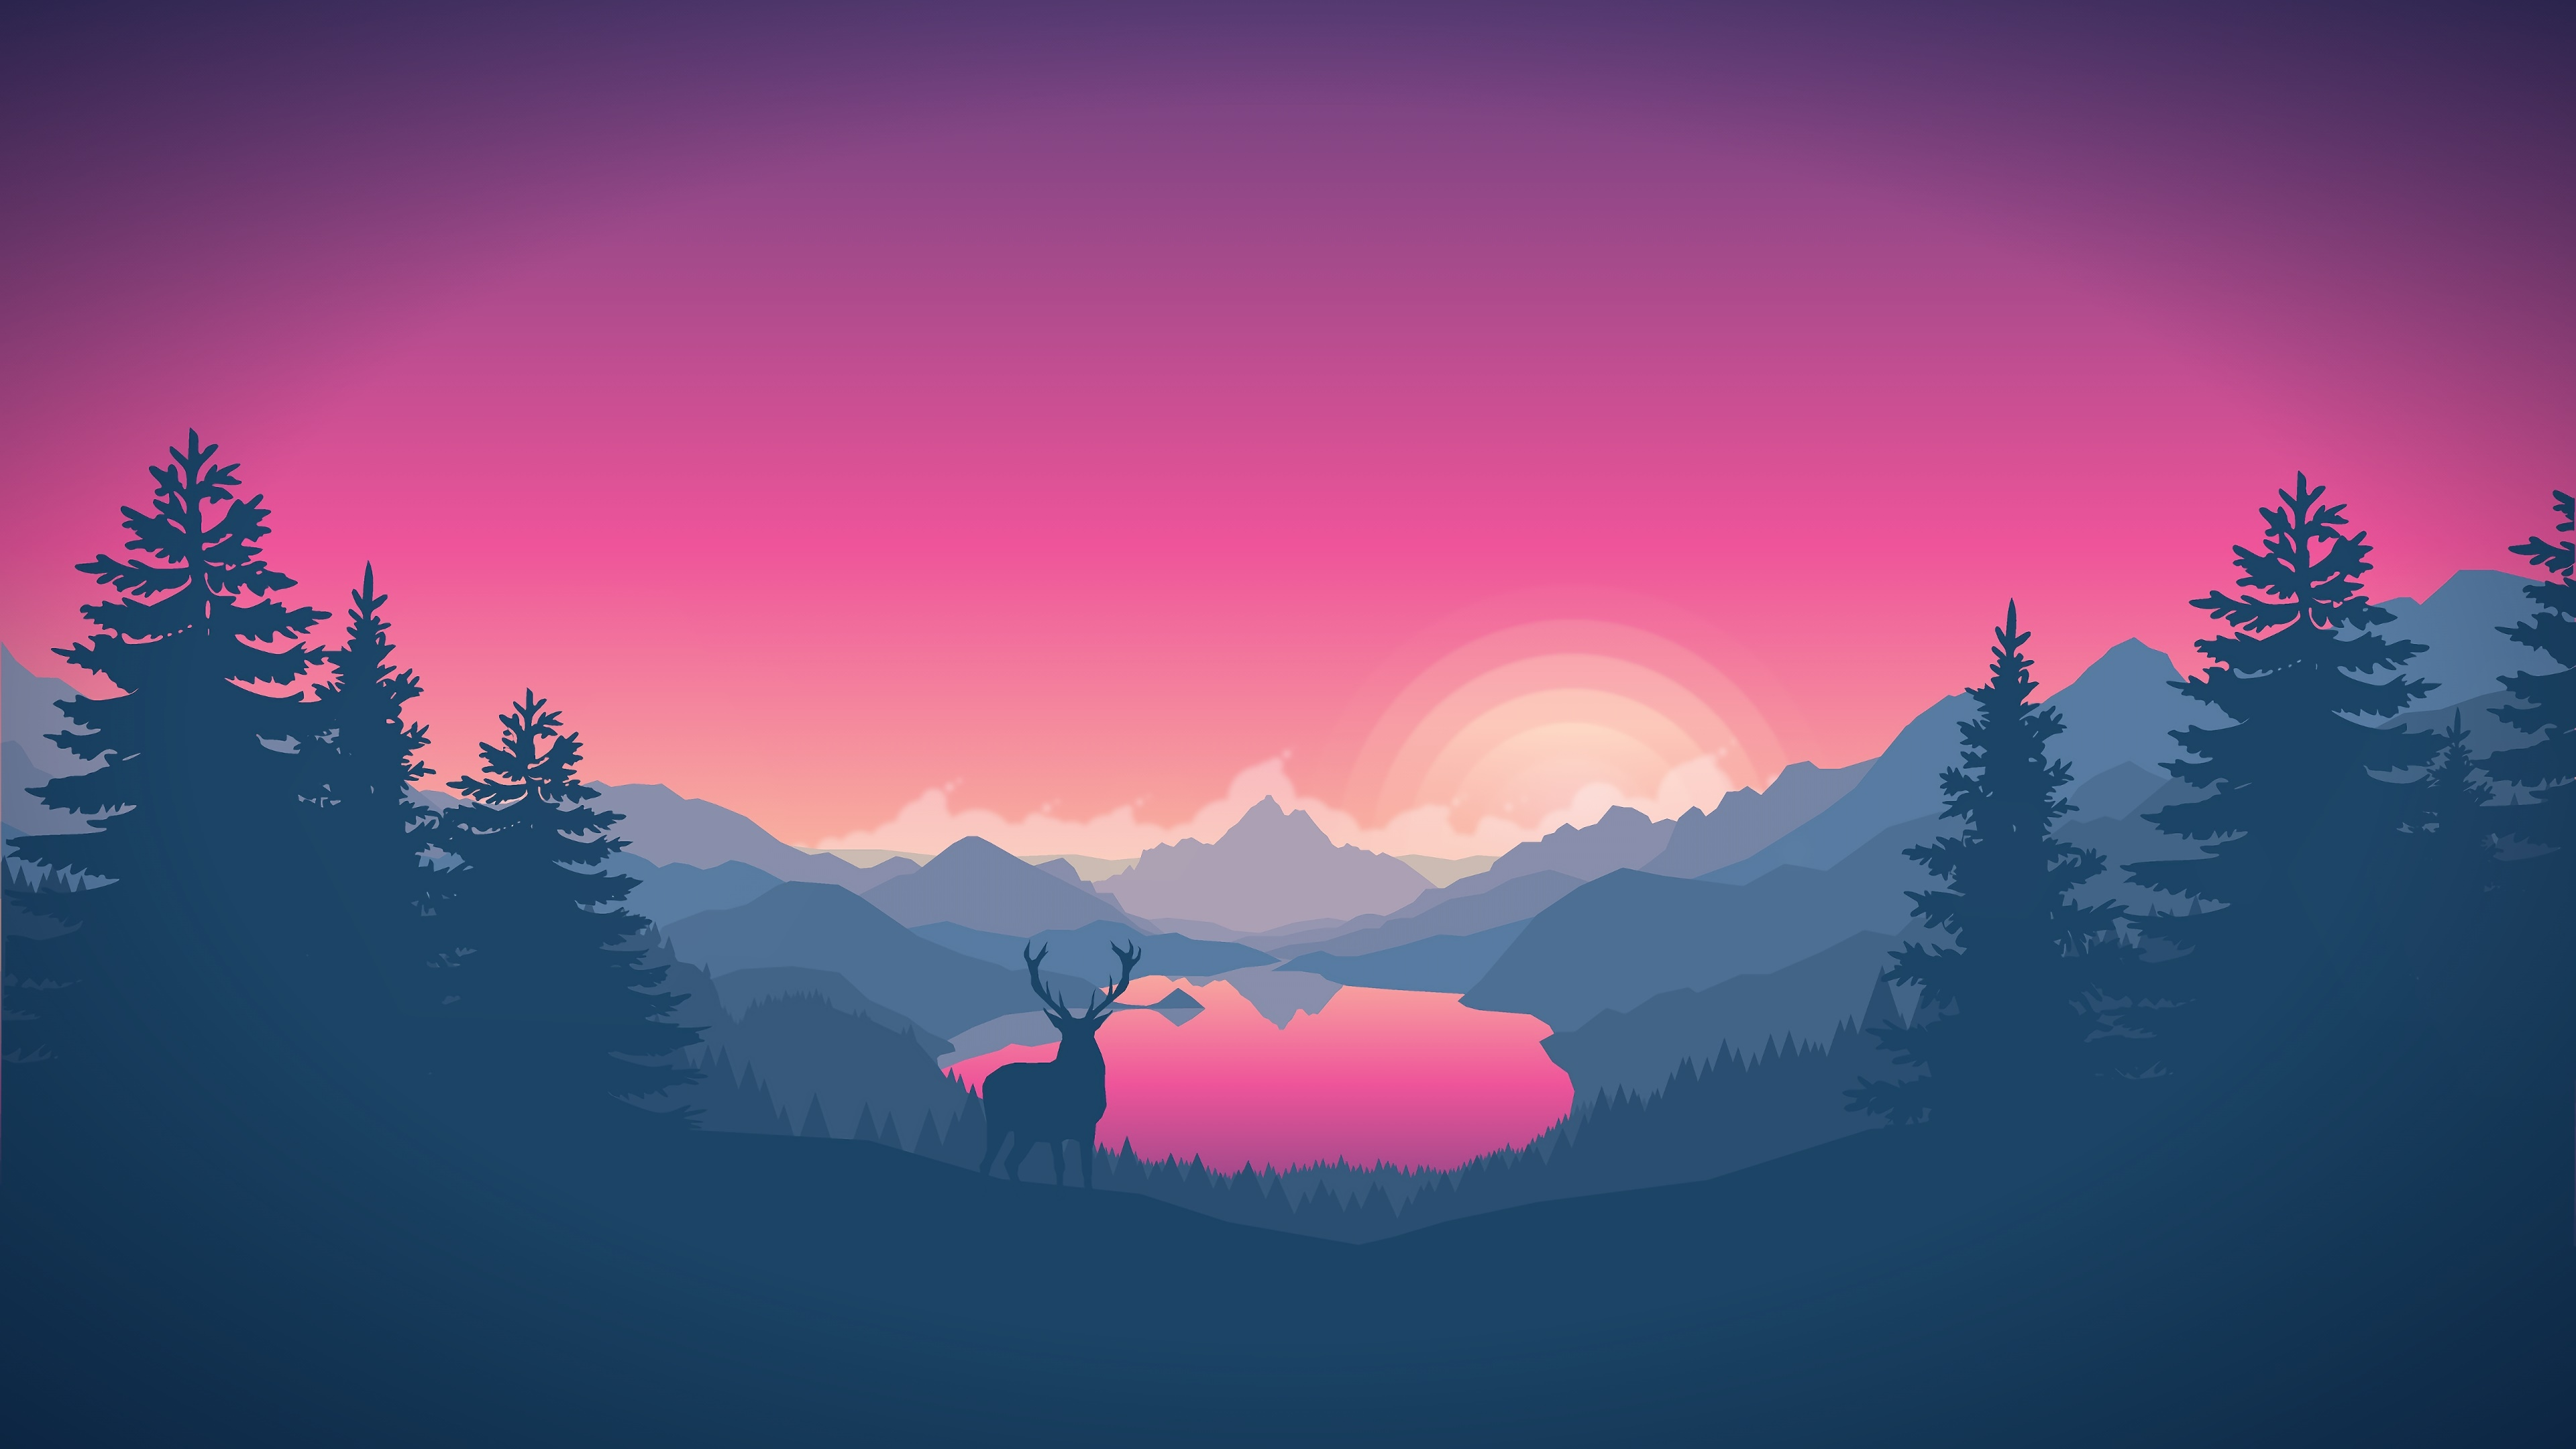 Pink sunrise in the mountains minimal landscape wallpaper